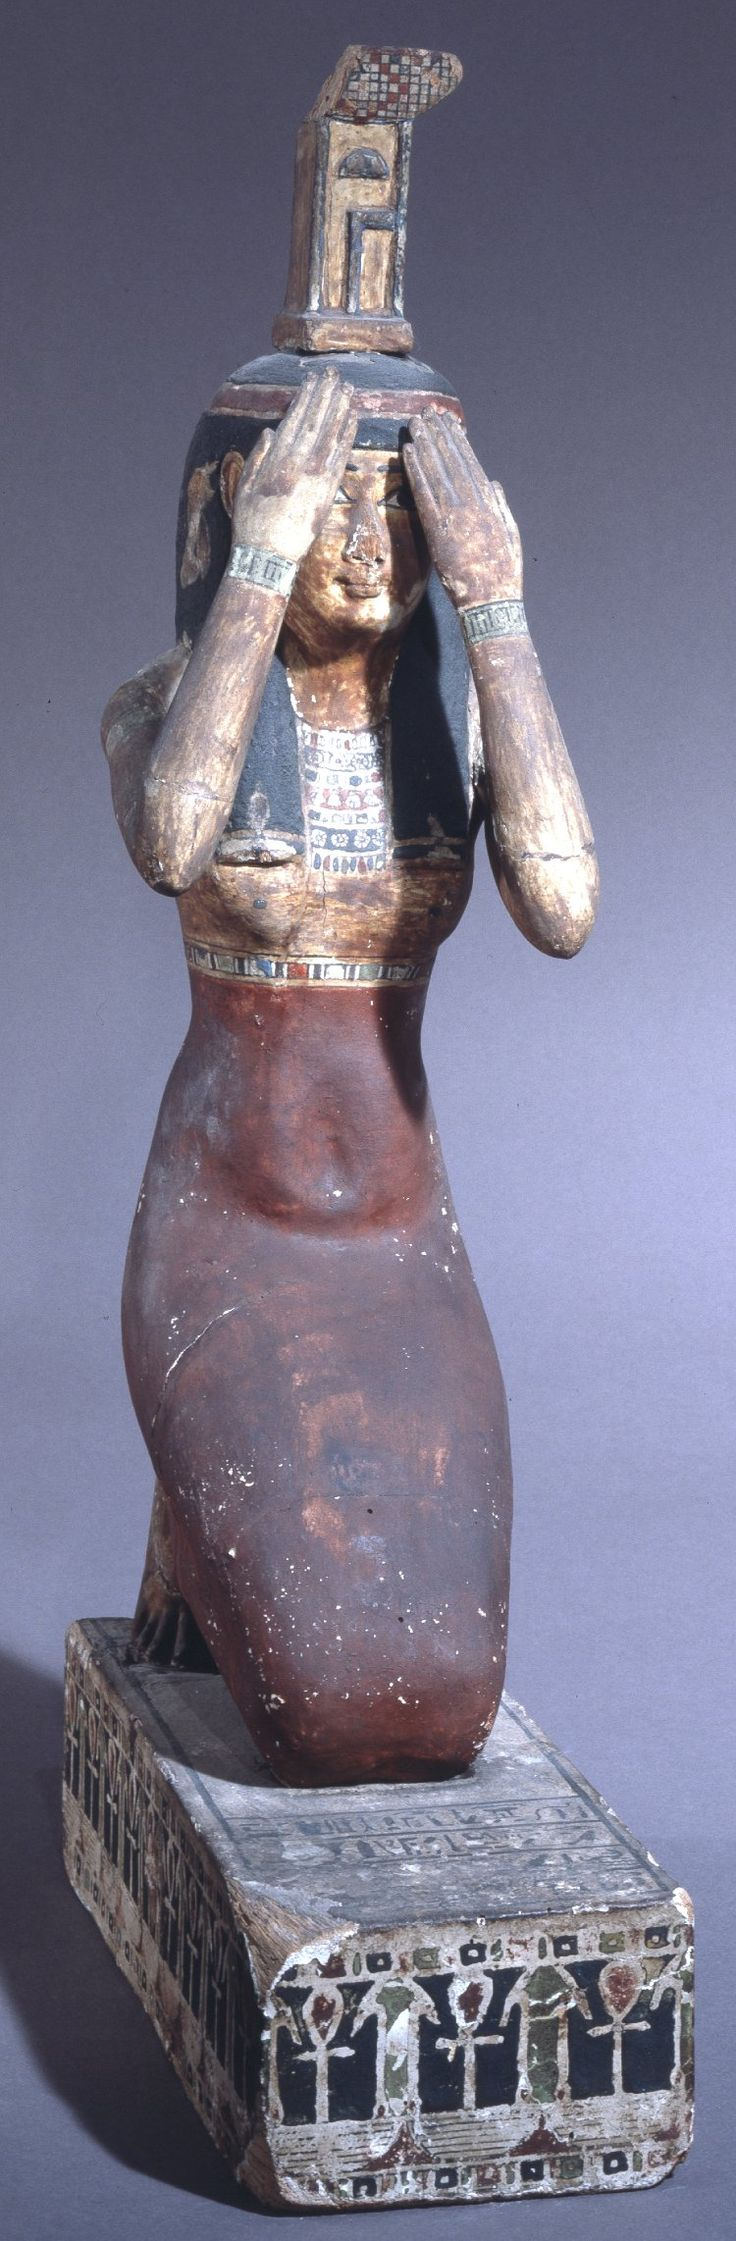 Wooden figure of Nephthys with the hands raised to the face in mourning. | The British Museum